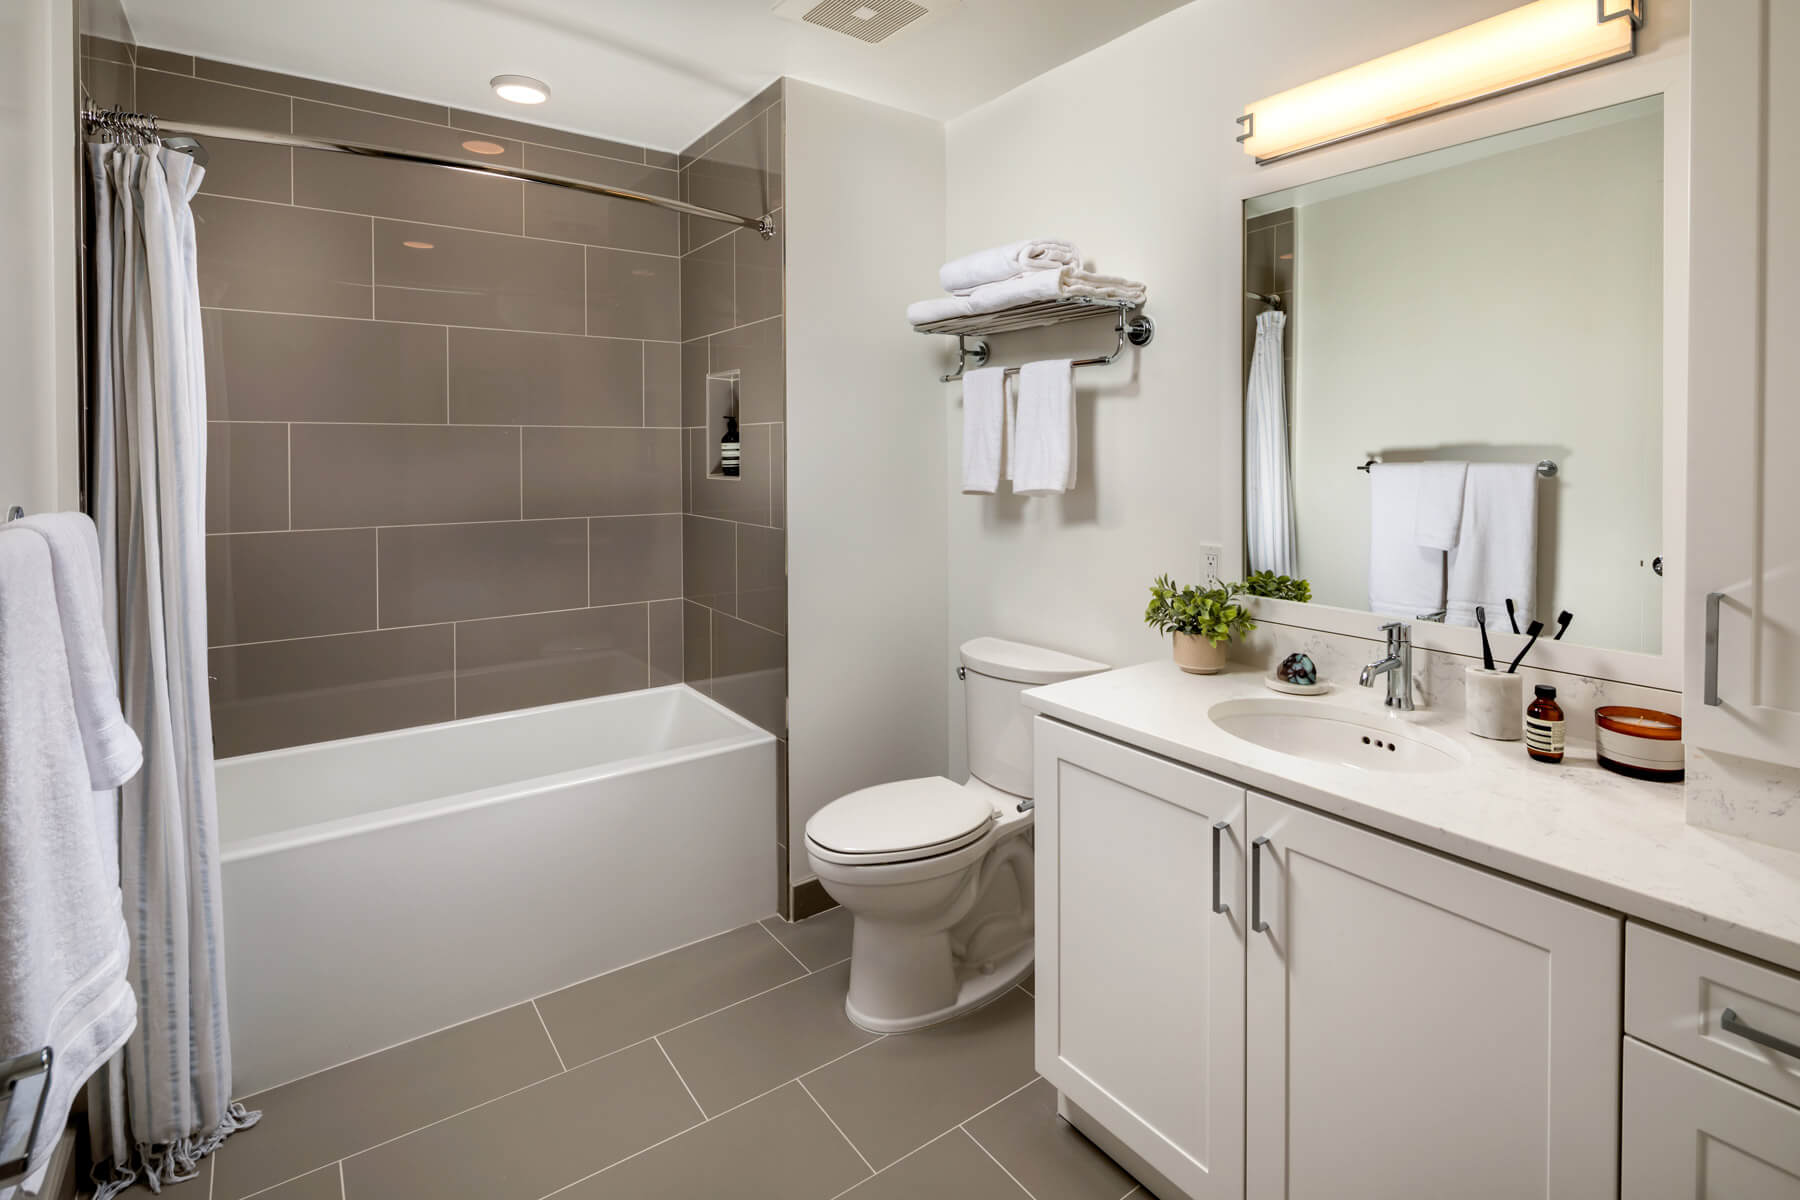 Two Bedroom Residence Master Bathroom